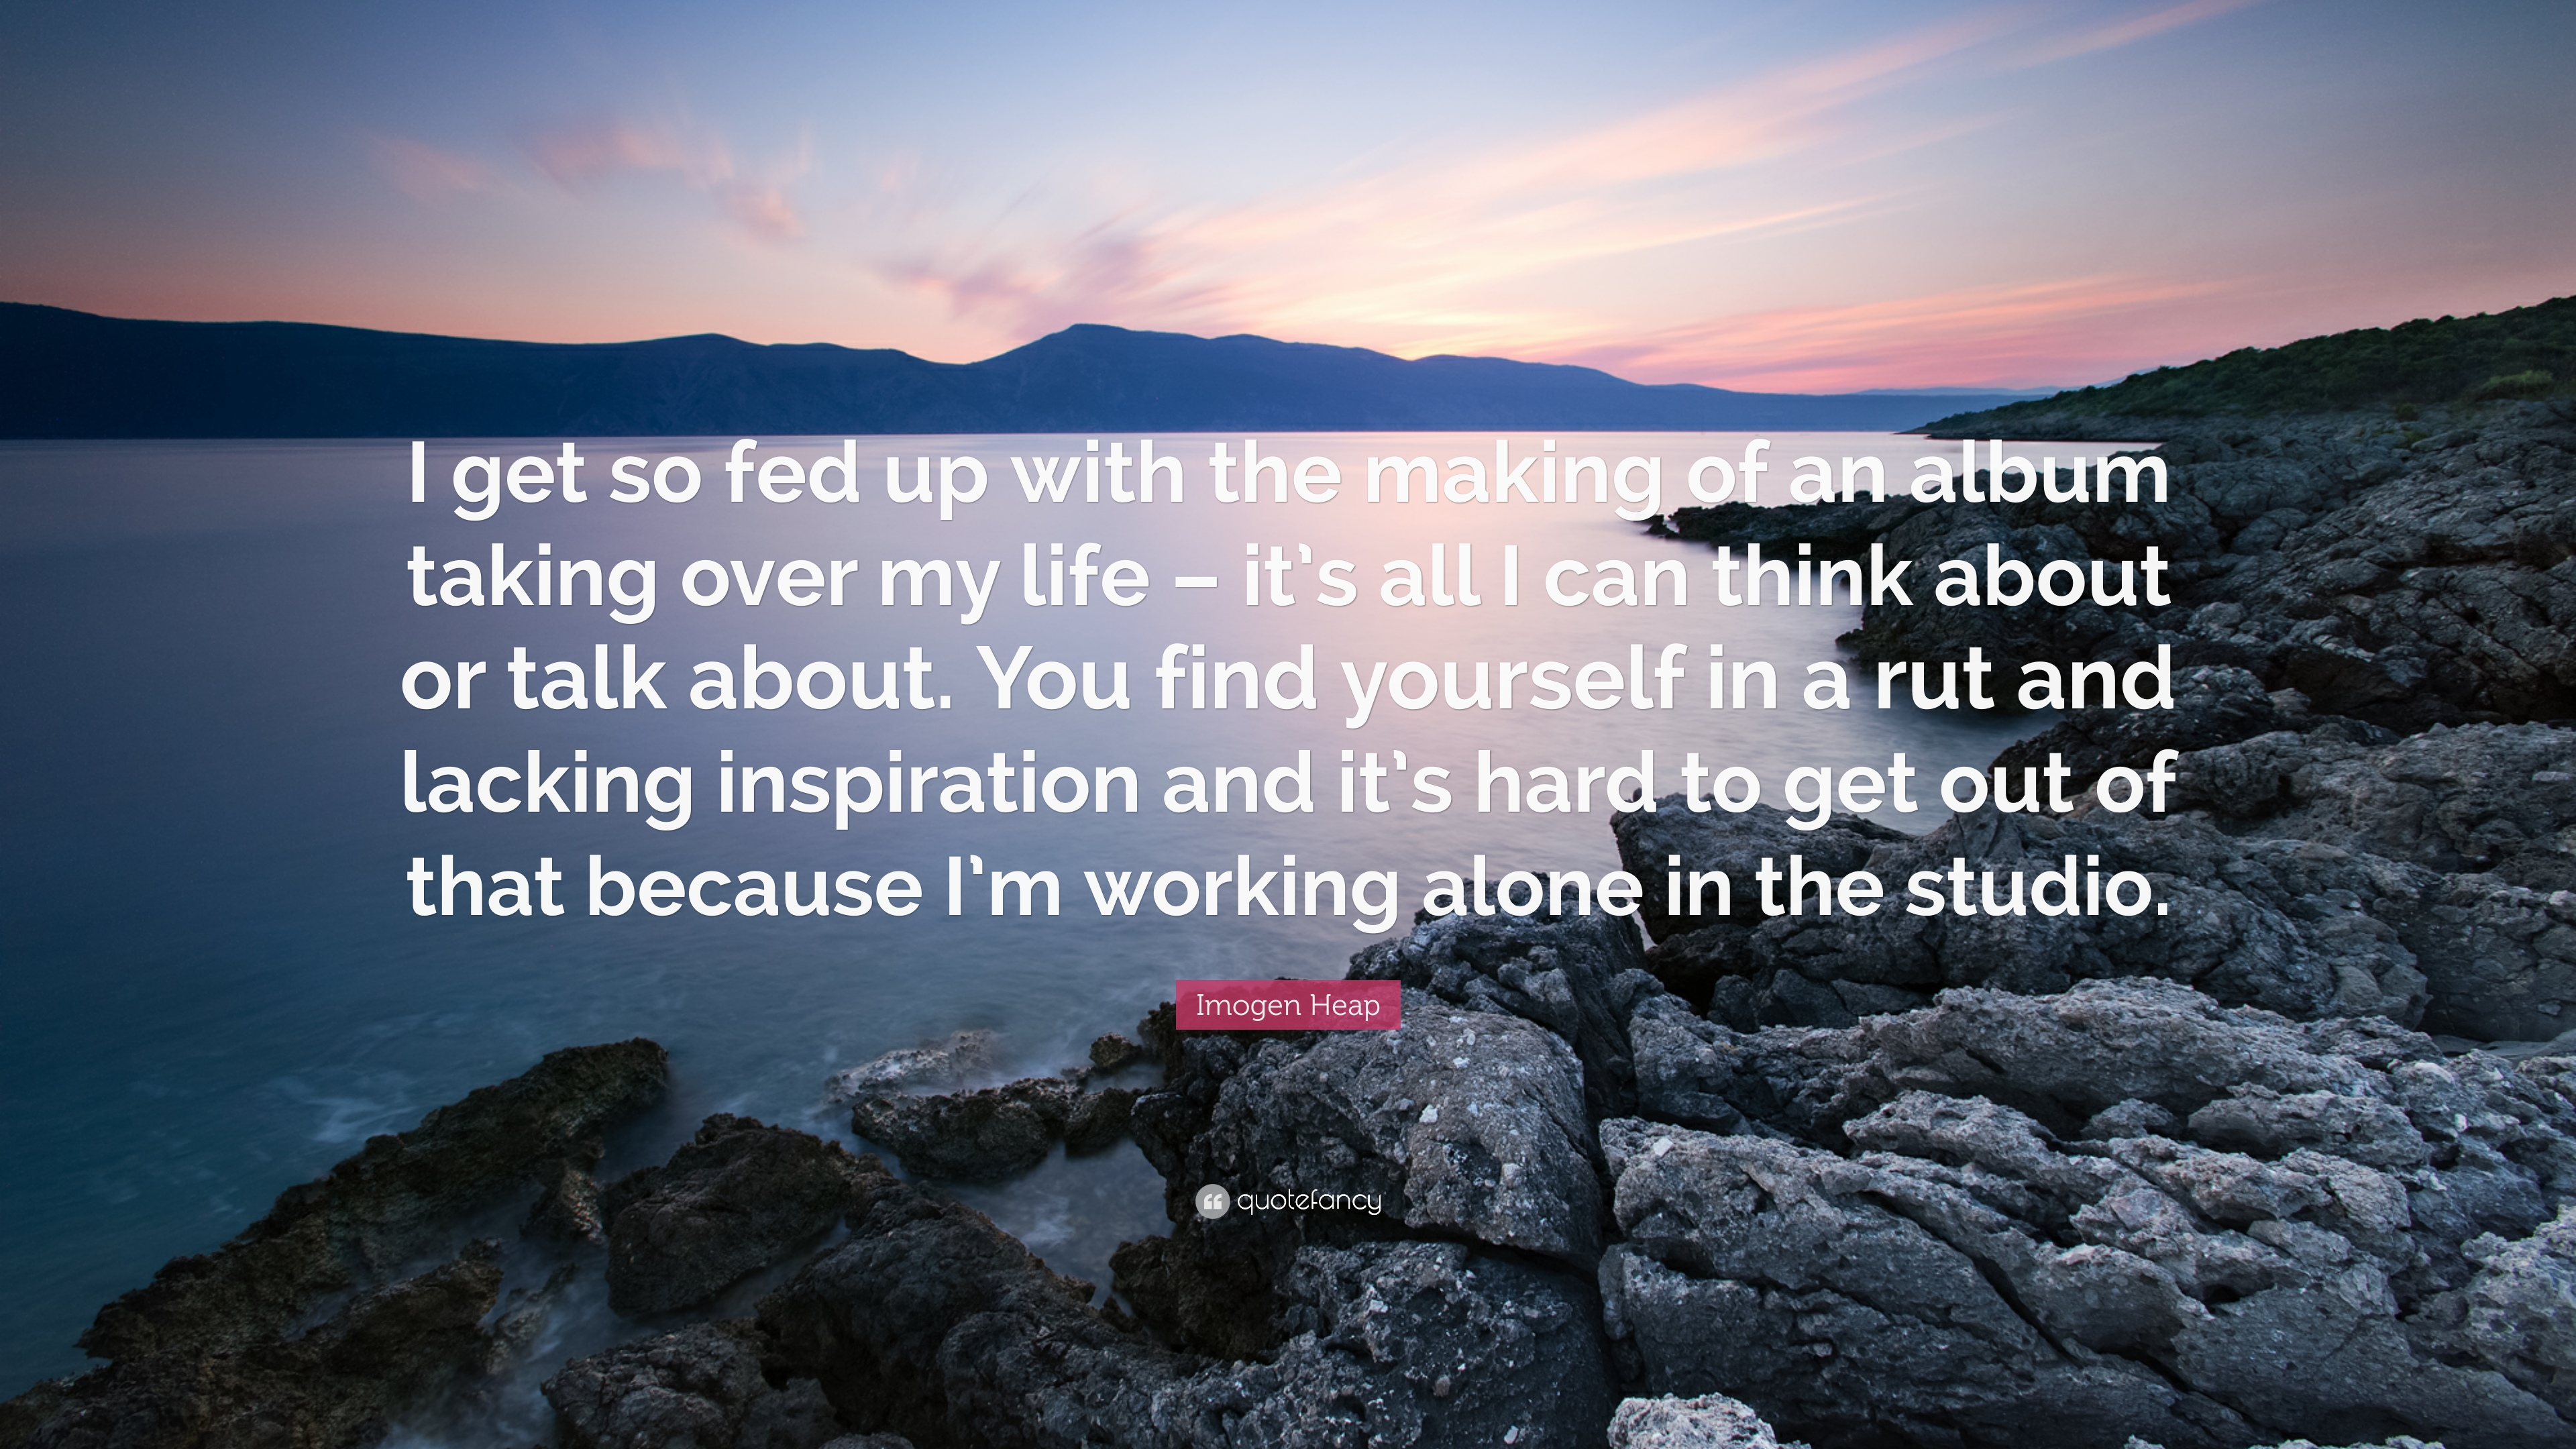 Imogen Heap Quote: I get so fed up with the making of an